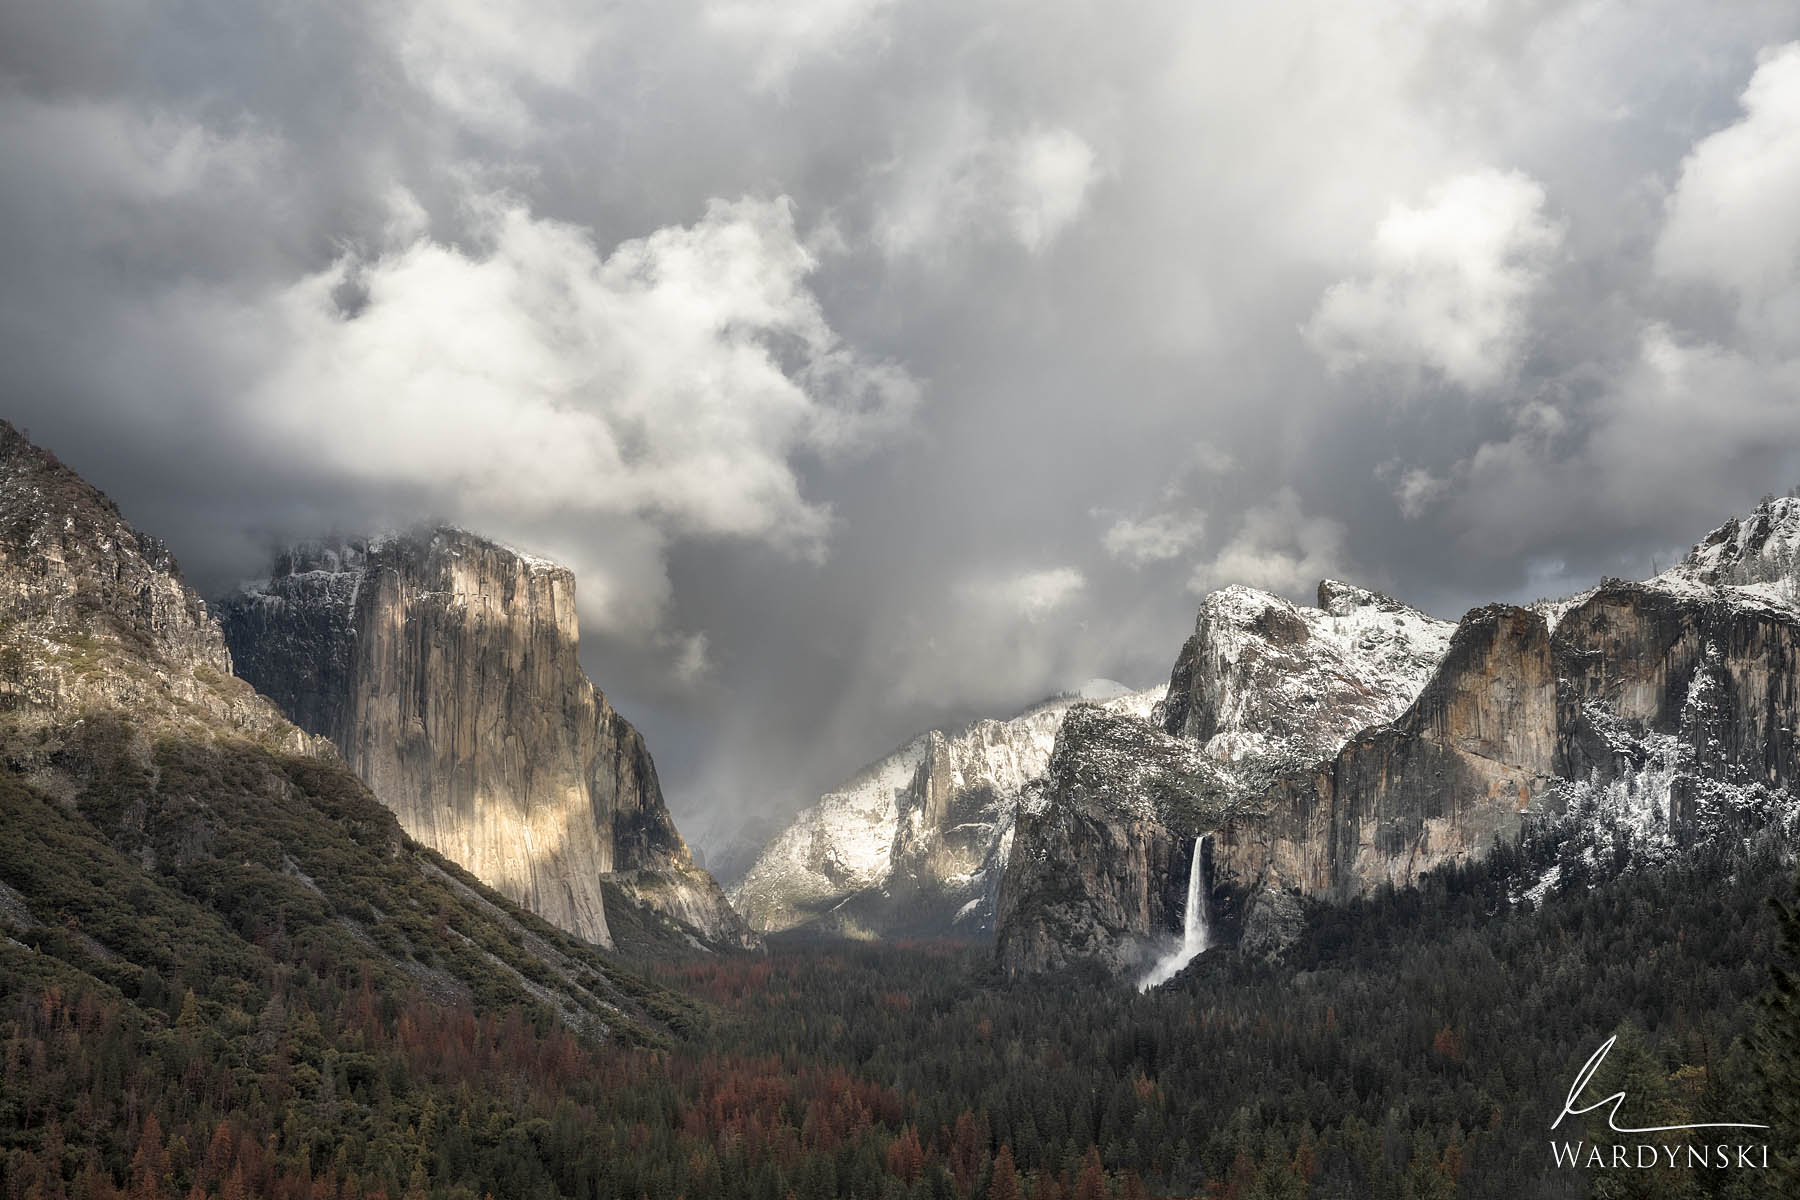 Fine Art Prints | Limited Edition of 200  Dappled light spotlights El Capitan and Sentinel Rock in Yosemite Valley. This classic...